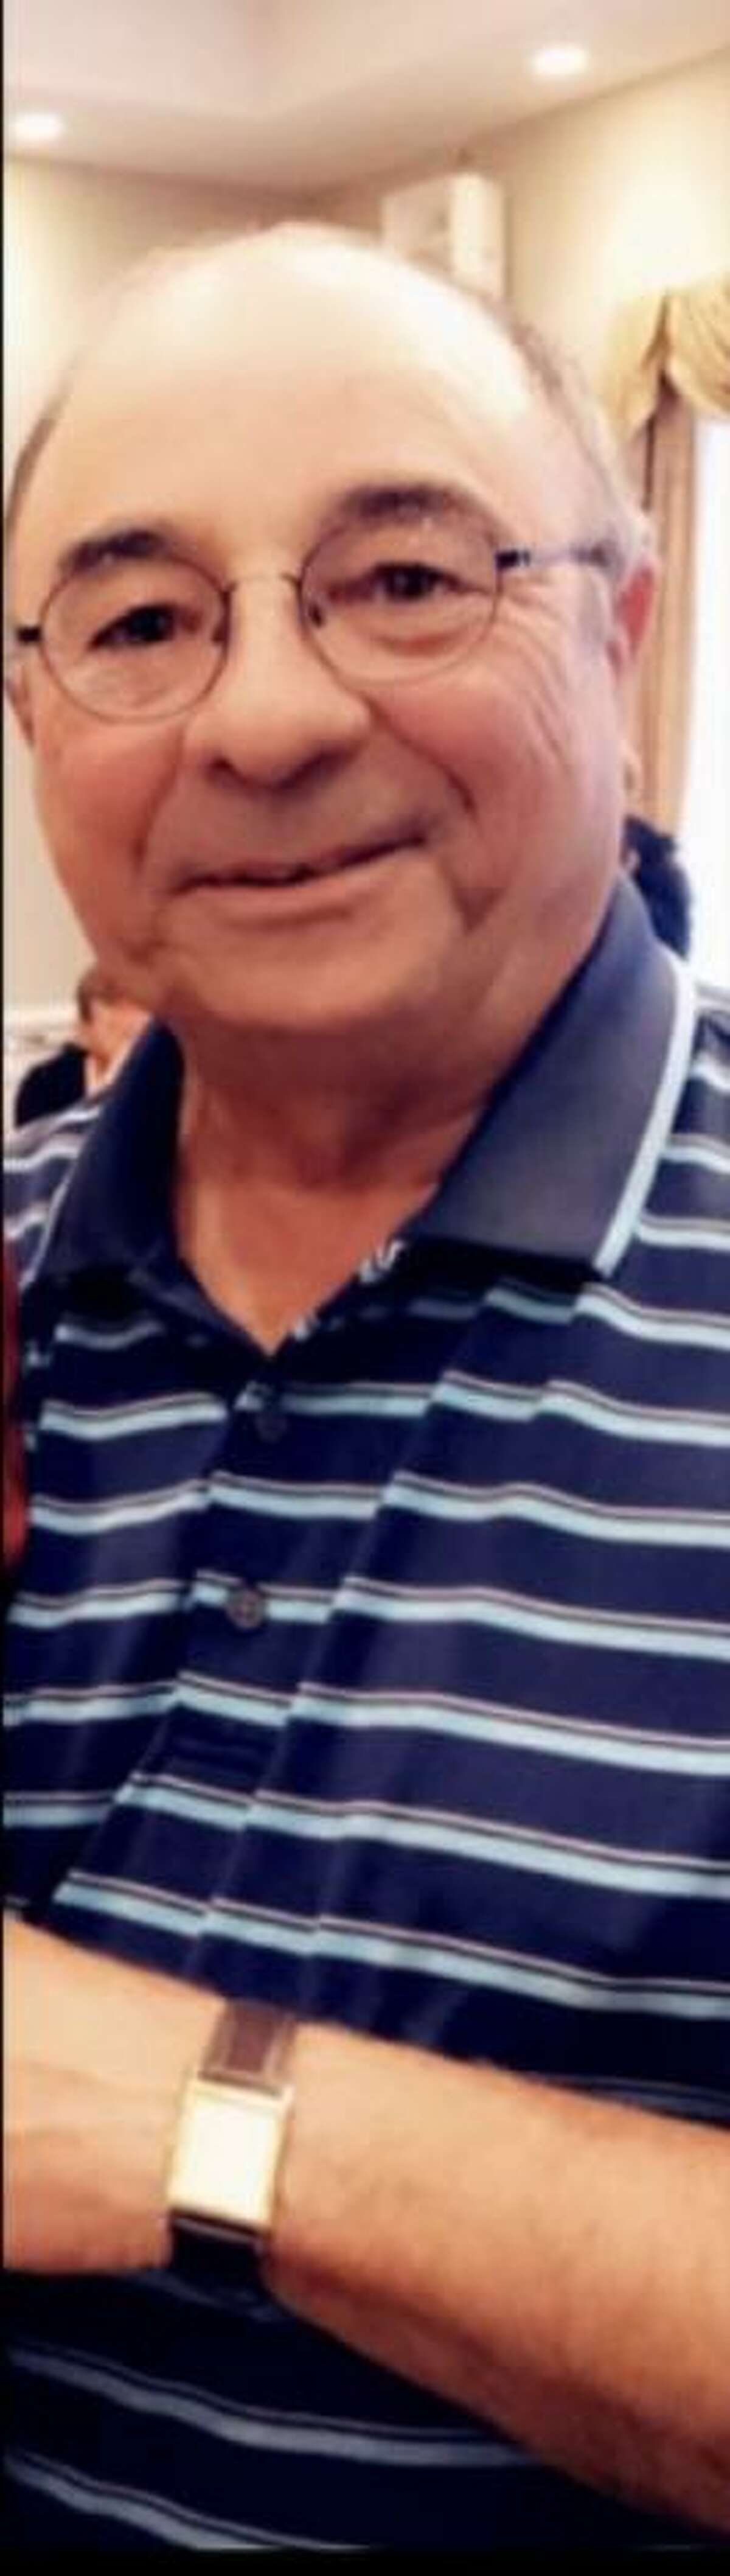 Dennis Scinto, 80, died after contracting COVID-19.